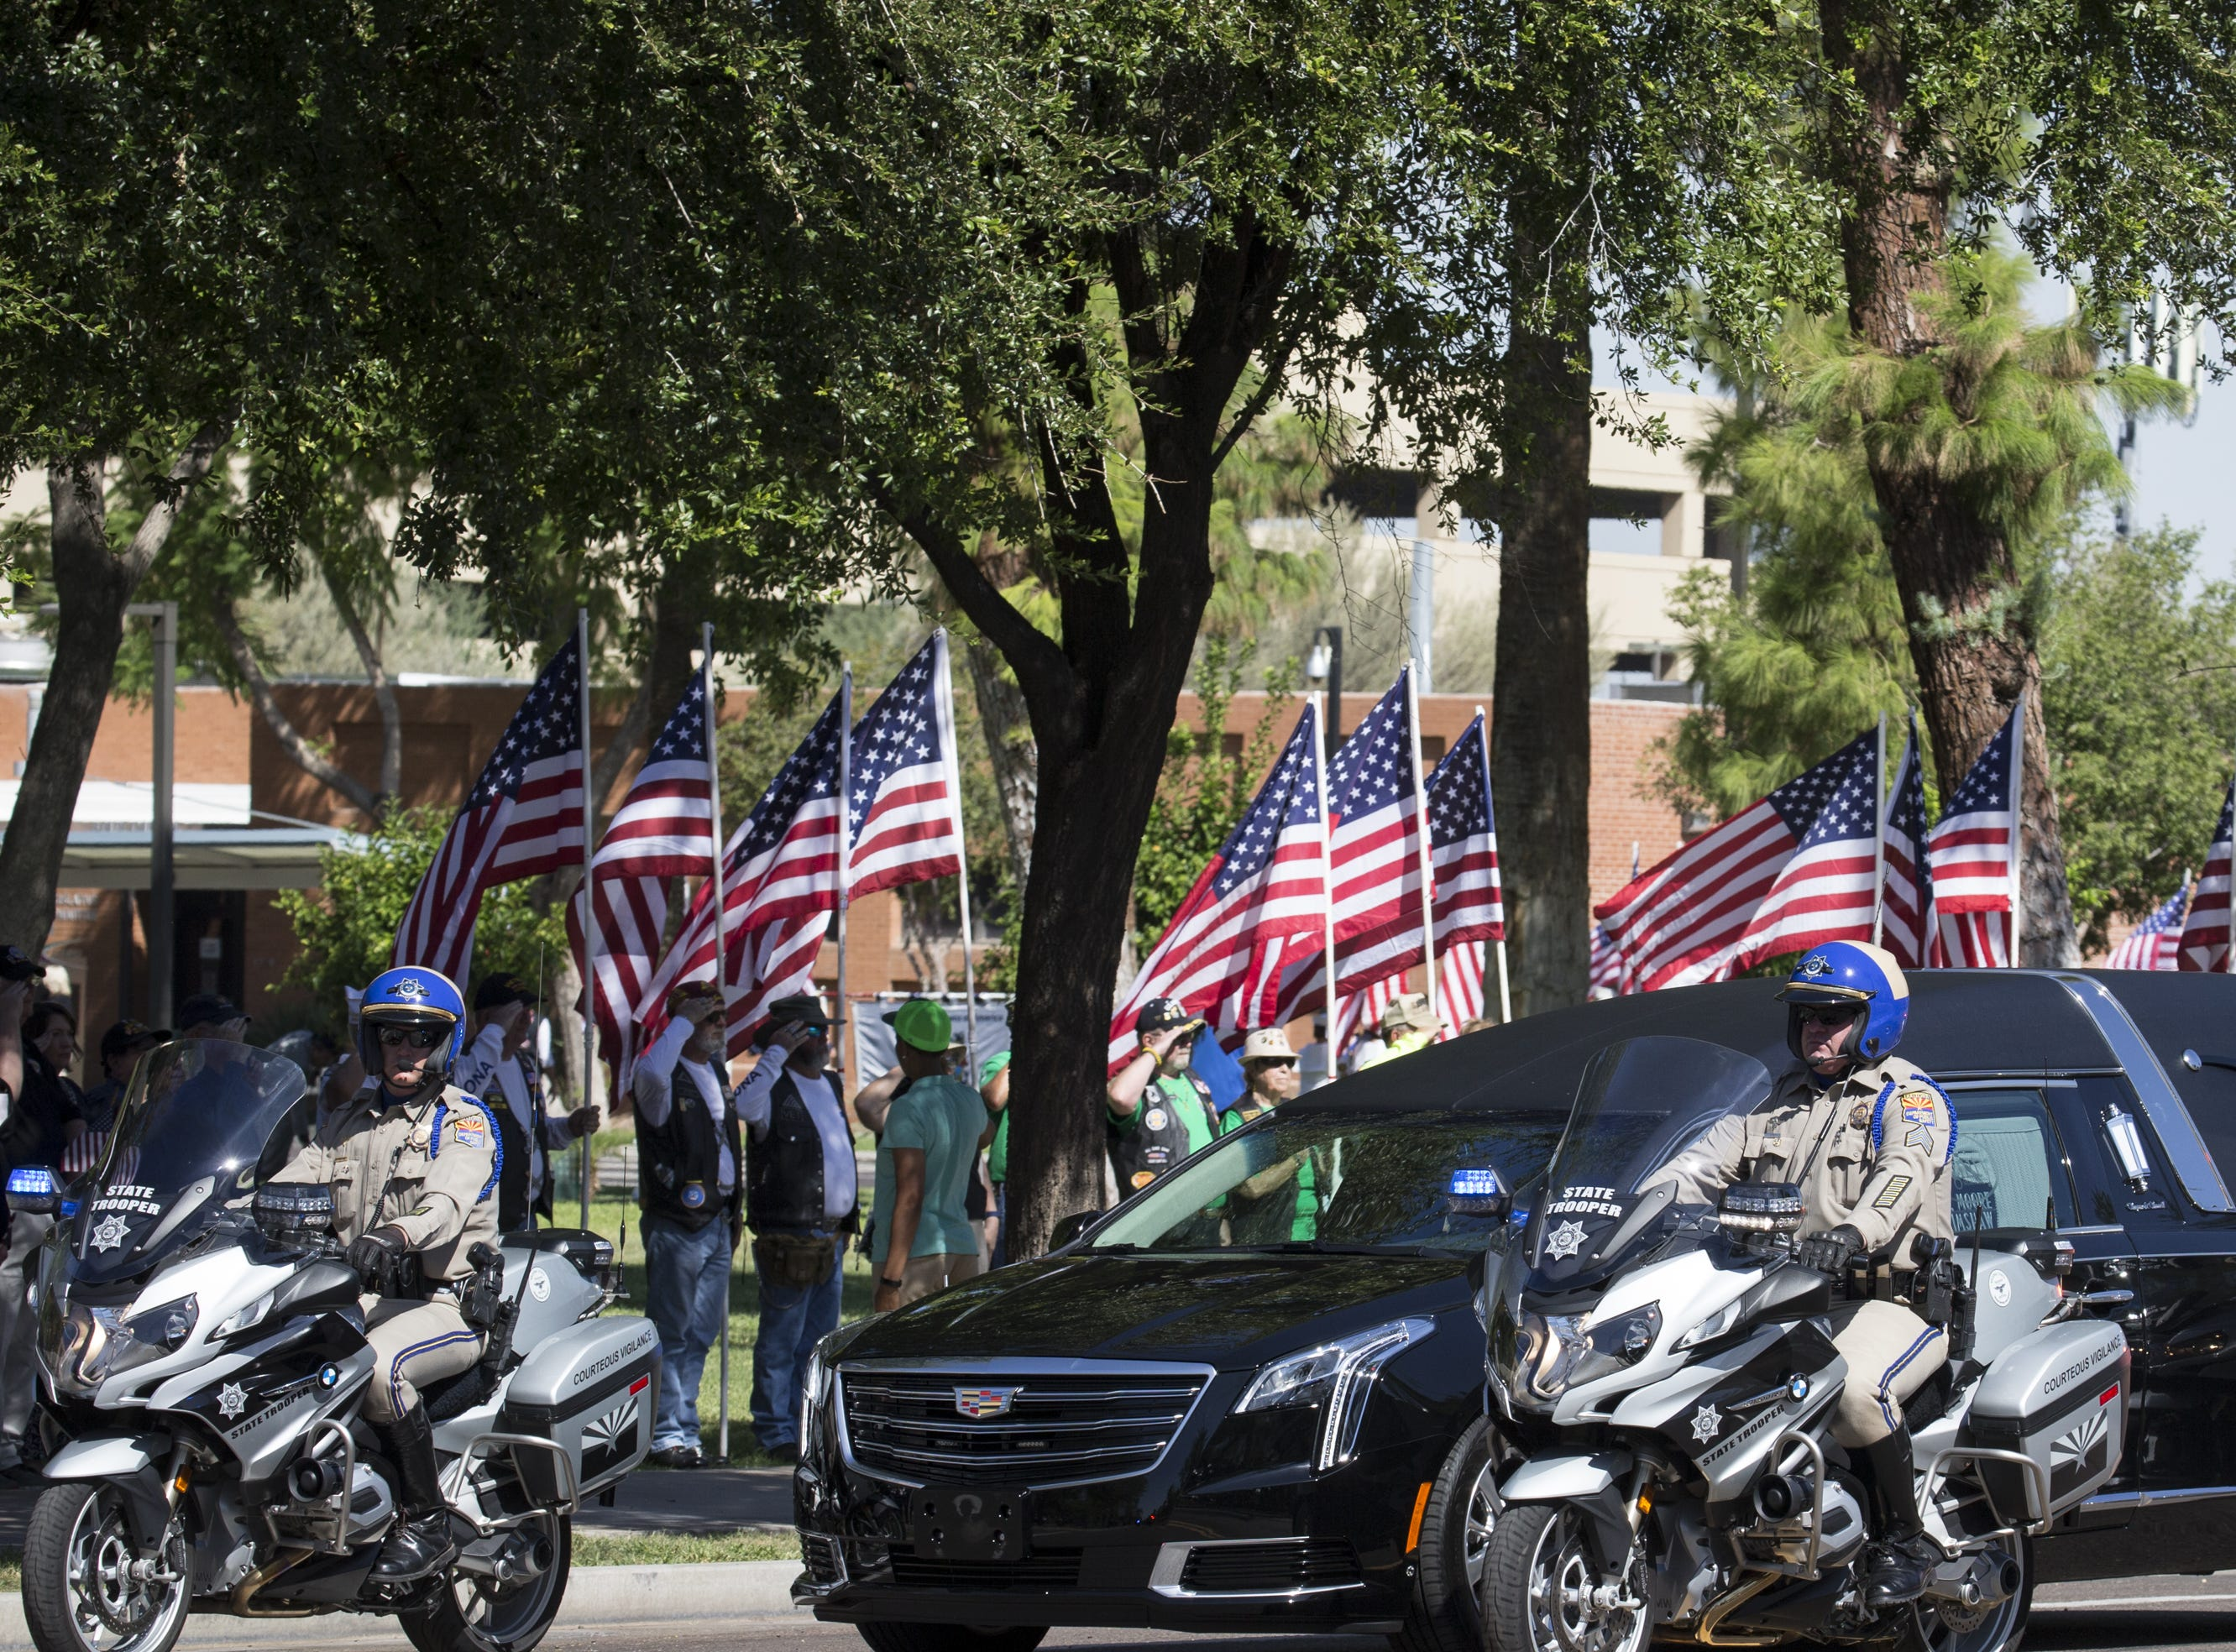 The motorcade arrives at the Arizona State Capitol for the John McCain Memorial Service, August 29, 2018, Phoenix, Arizona.